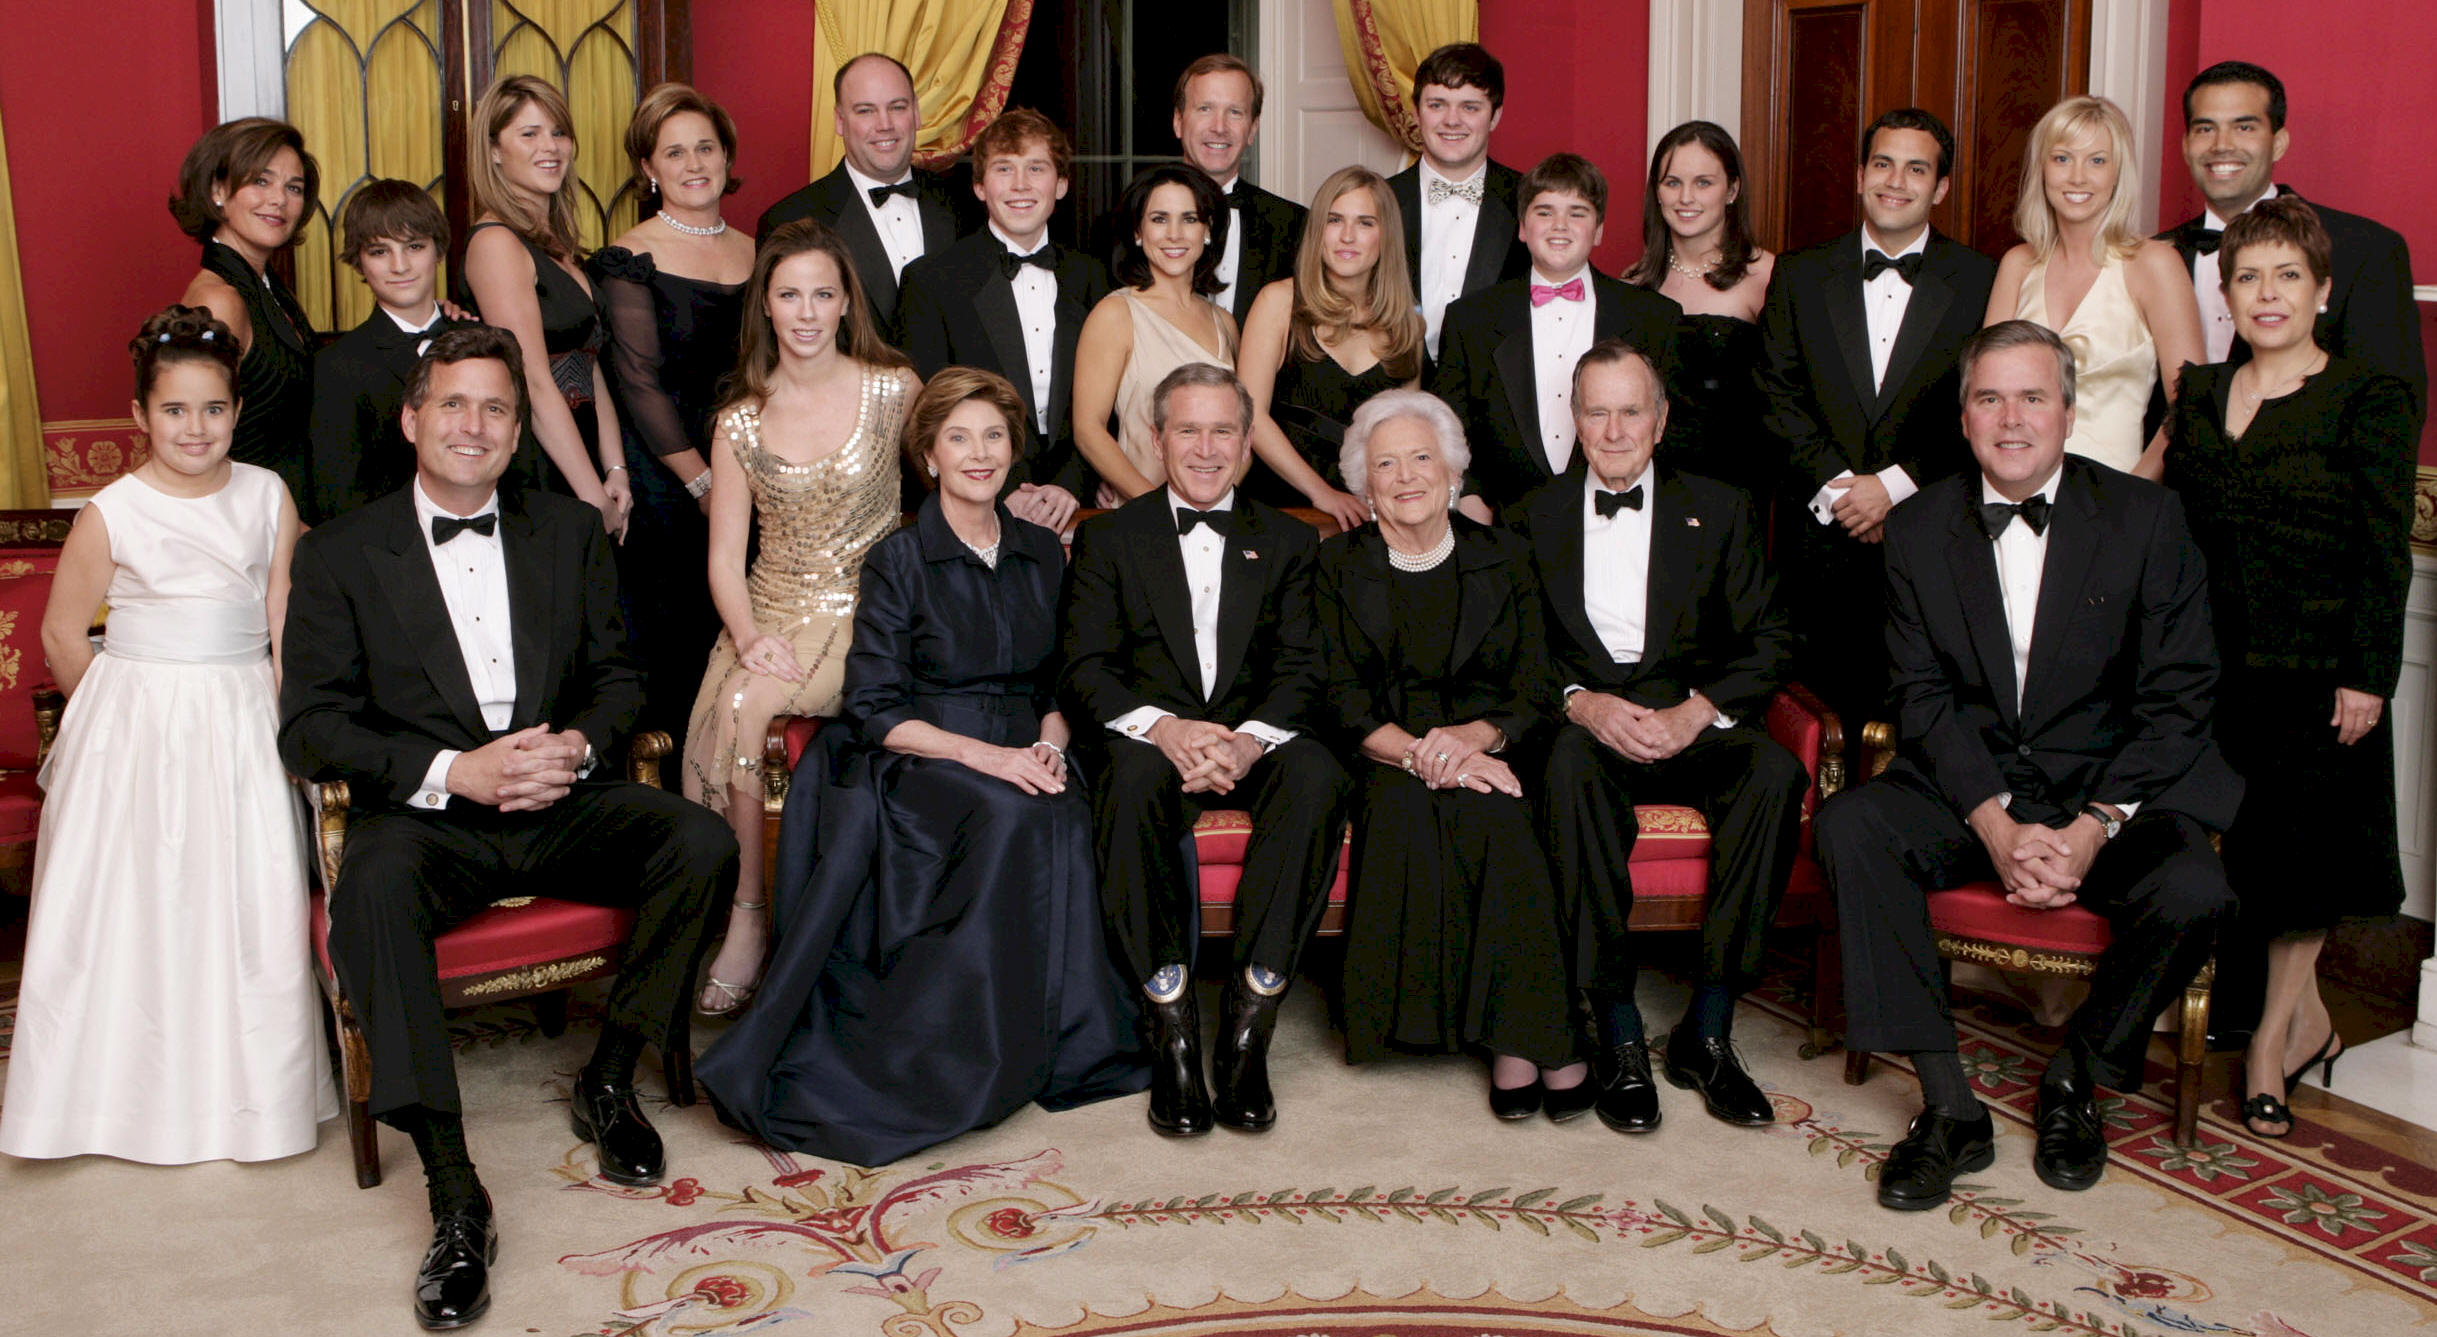 https://upload.wikimedia.org/wikipedia/commons/b/bb/George_W._Bush_and_family.jpg